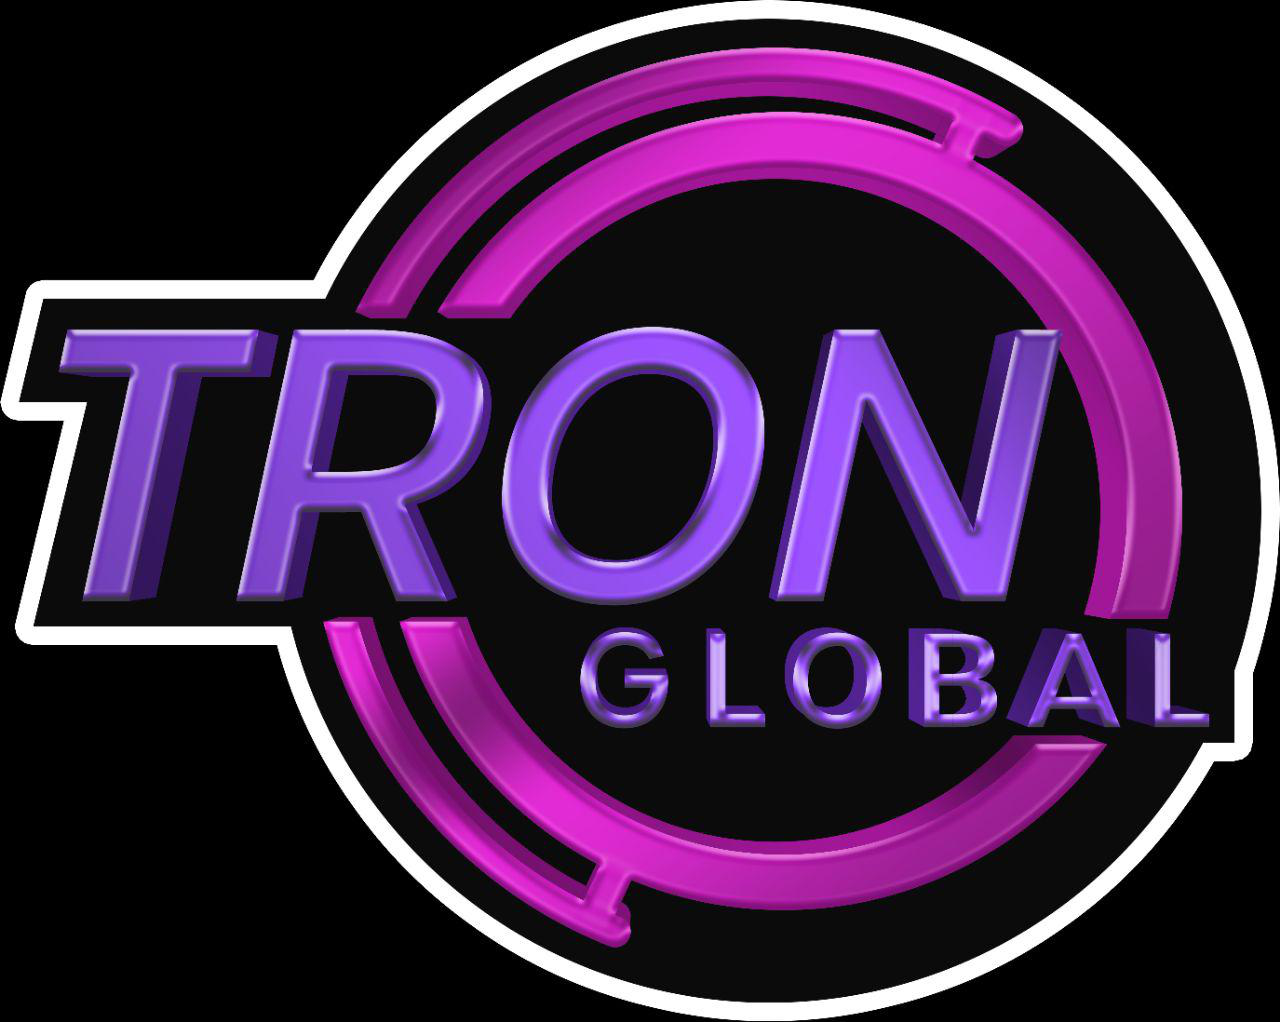 Tron Global logo